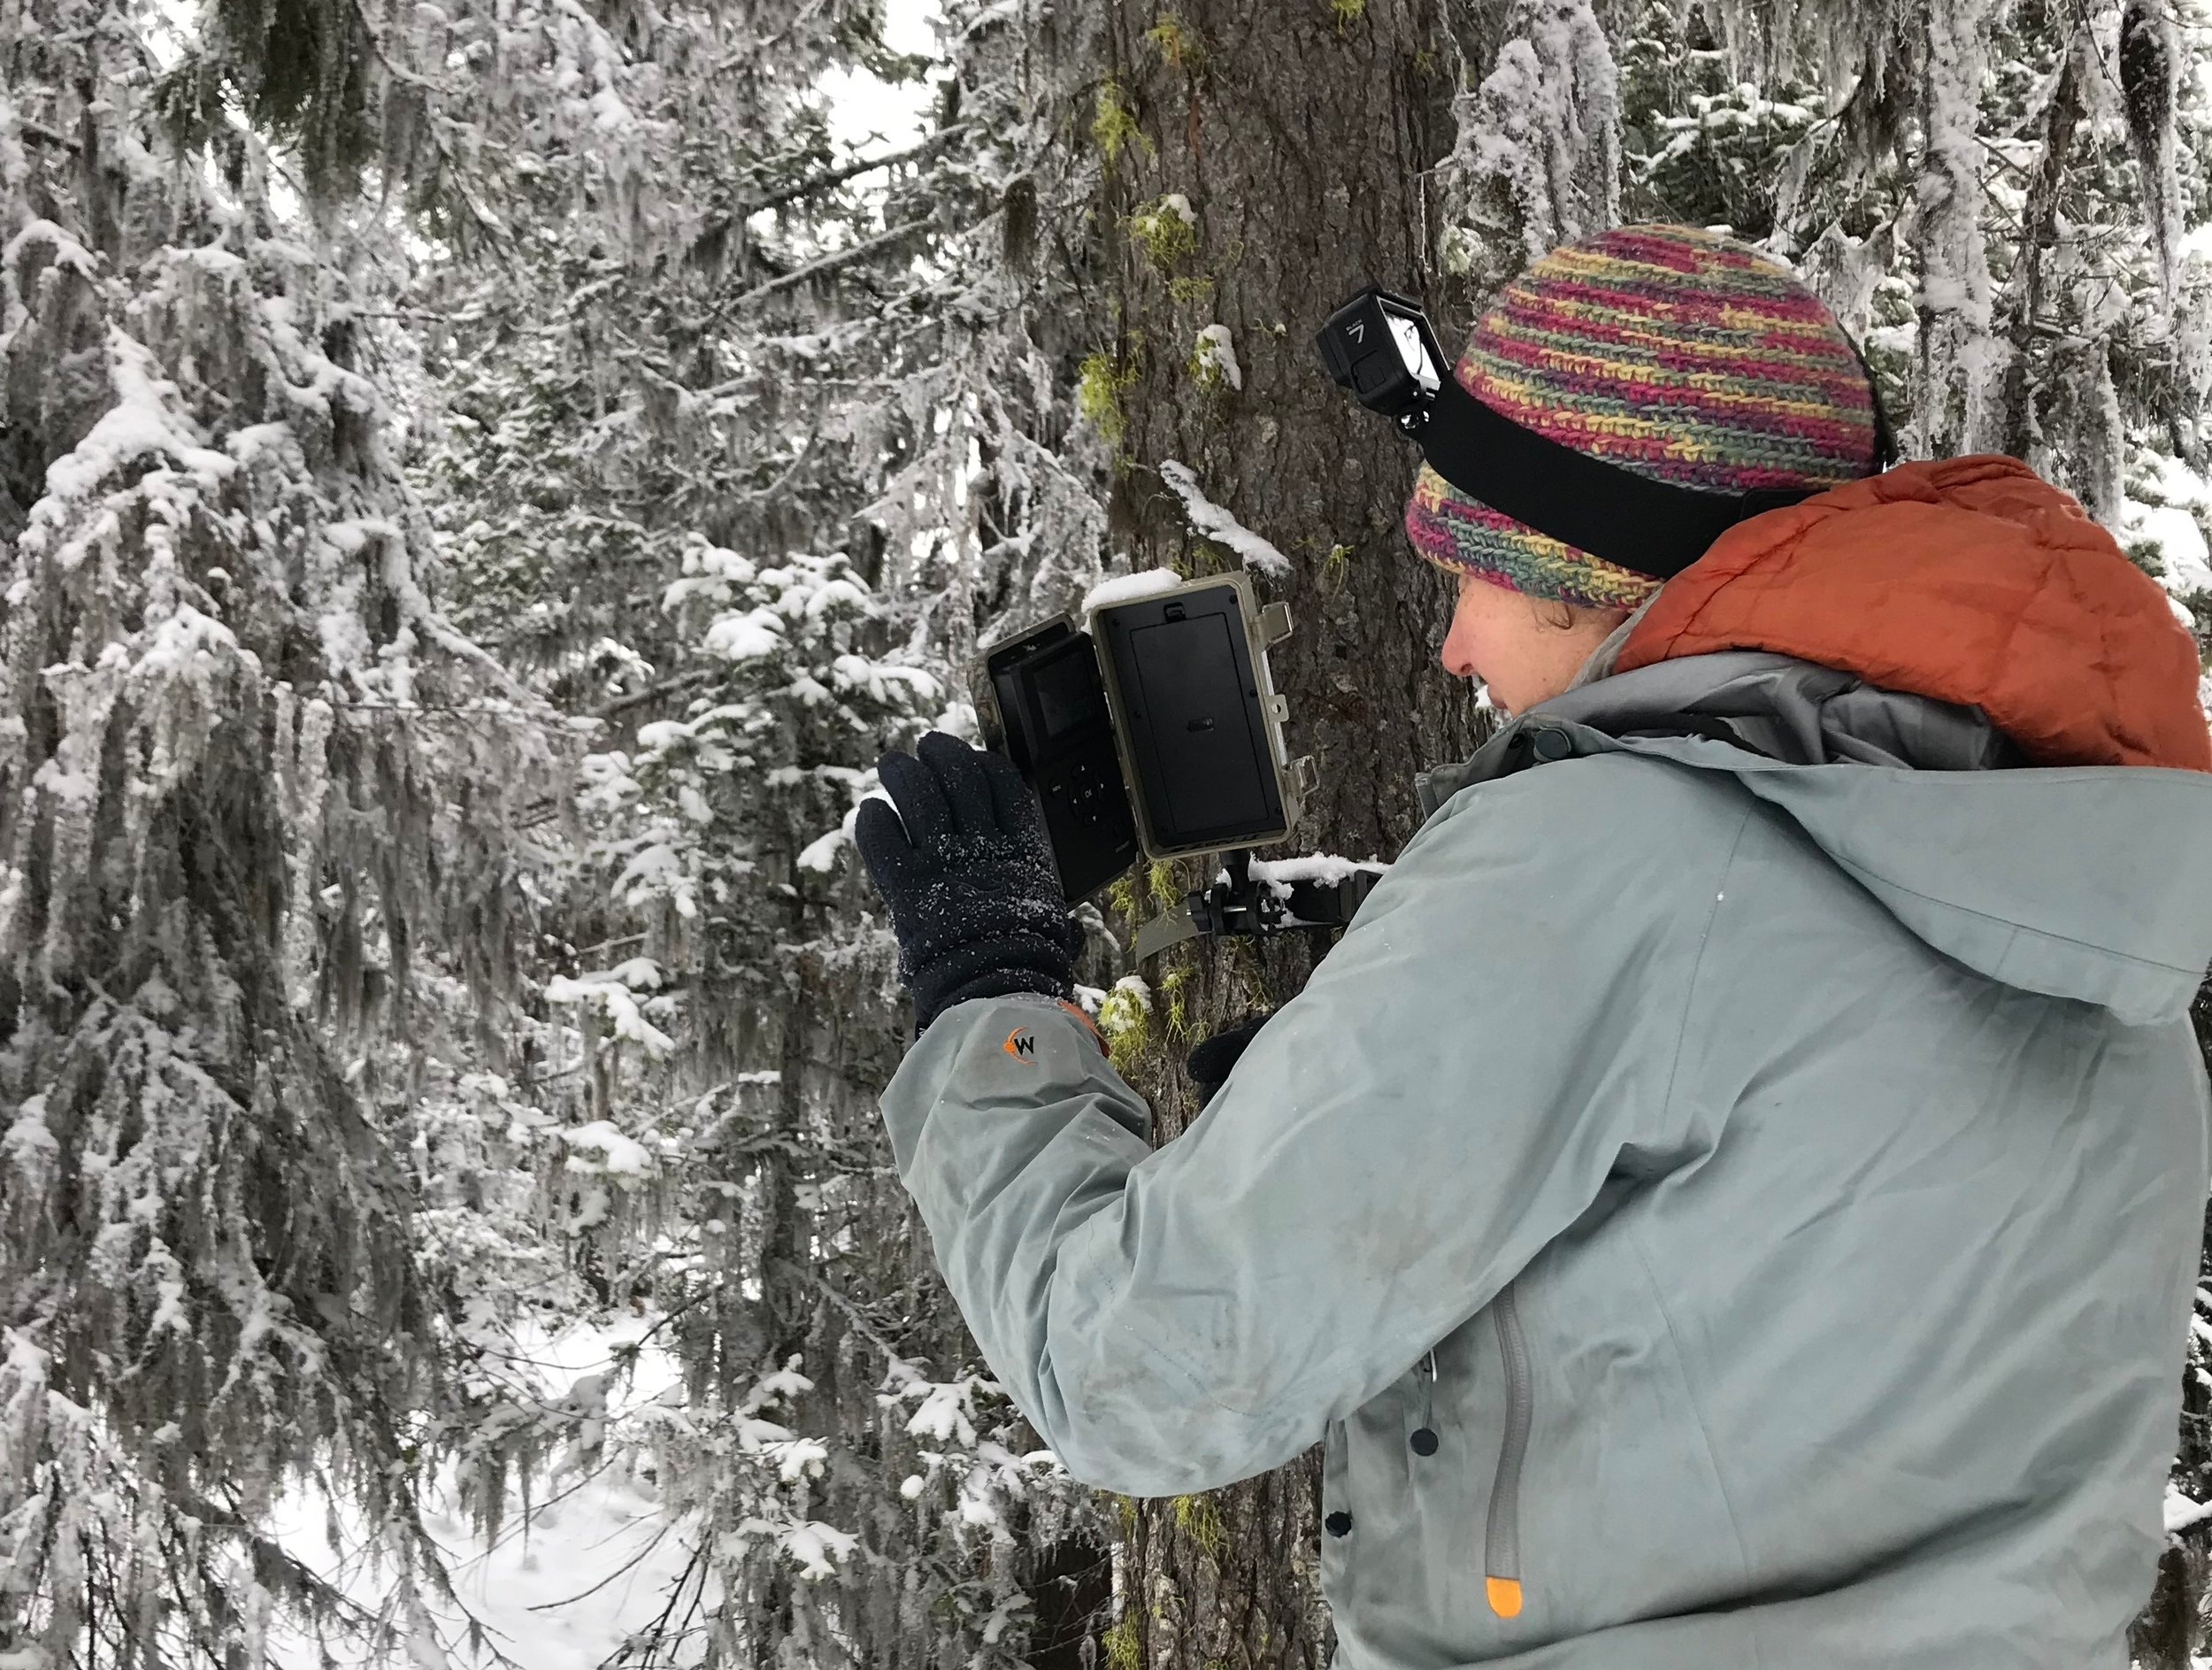 We want to know: Do our forest thinning strategies align with snowpack retention to secure water in a warming climate? At a research site in Blewitt Pass, scientist Emily Howe checks the status of gear to track snow accumulation and melt-out through the winter season. Photo by Jamie Robertson.